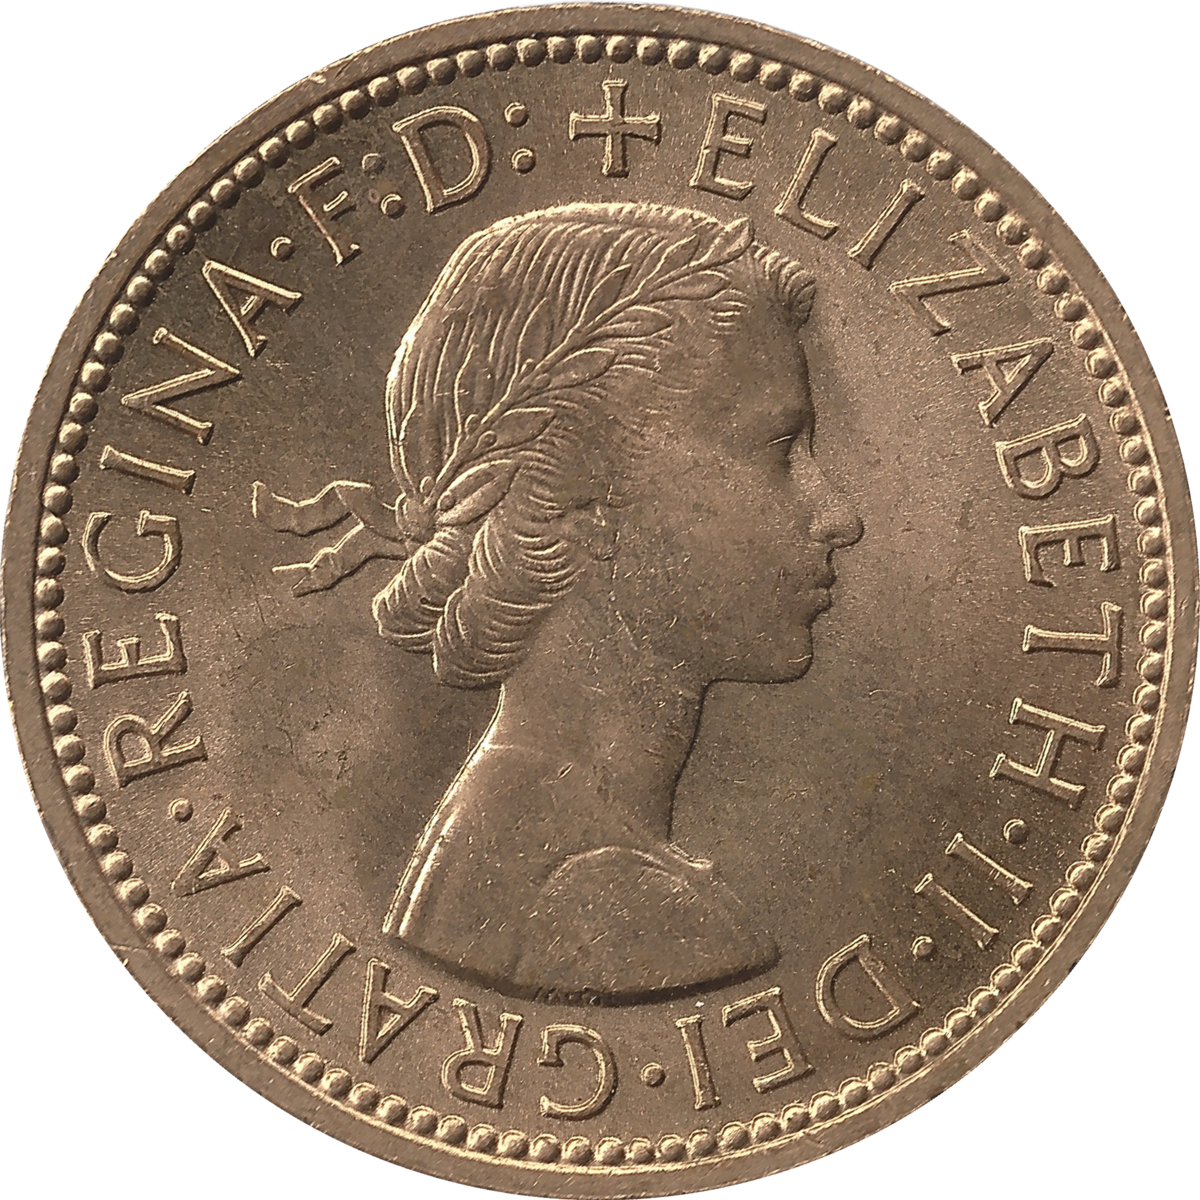 Buy one get one for a penny png image. Halfpenny british pre decimal